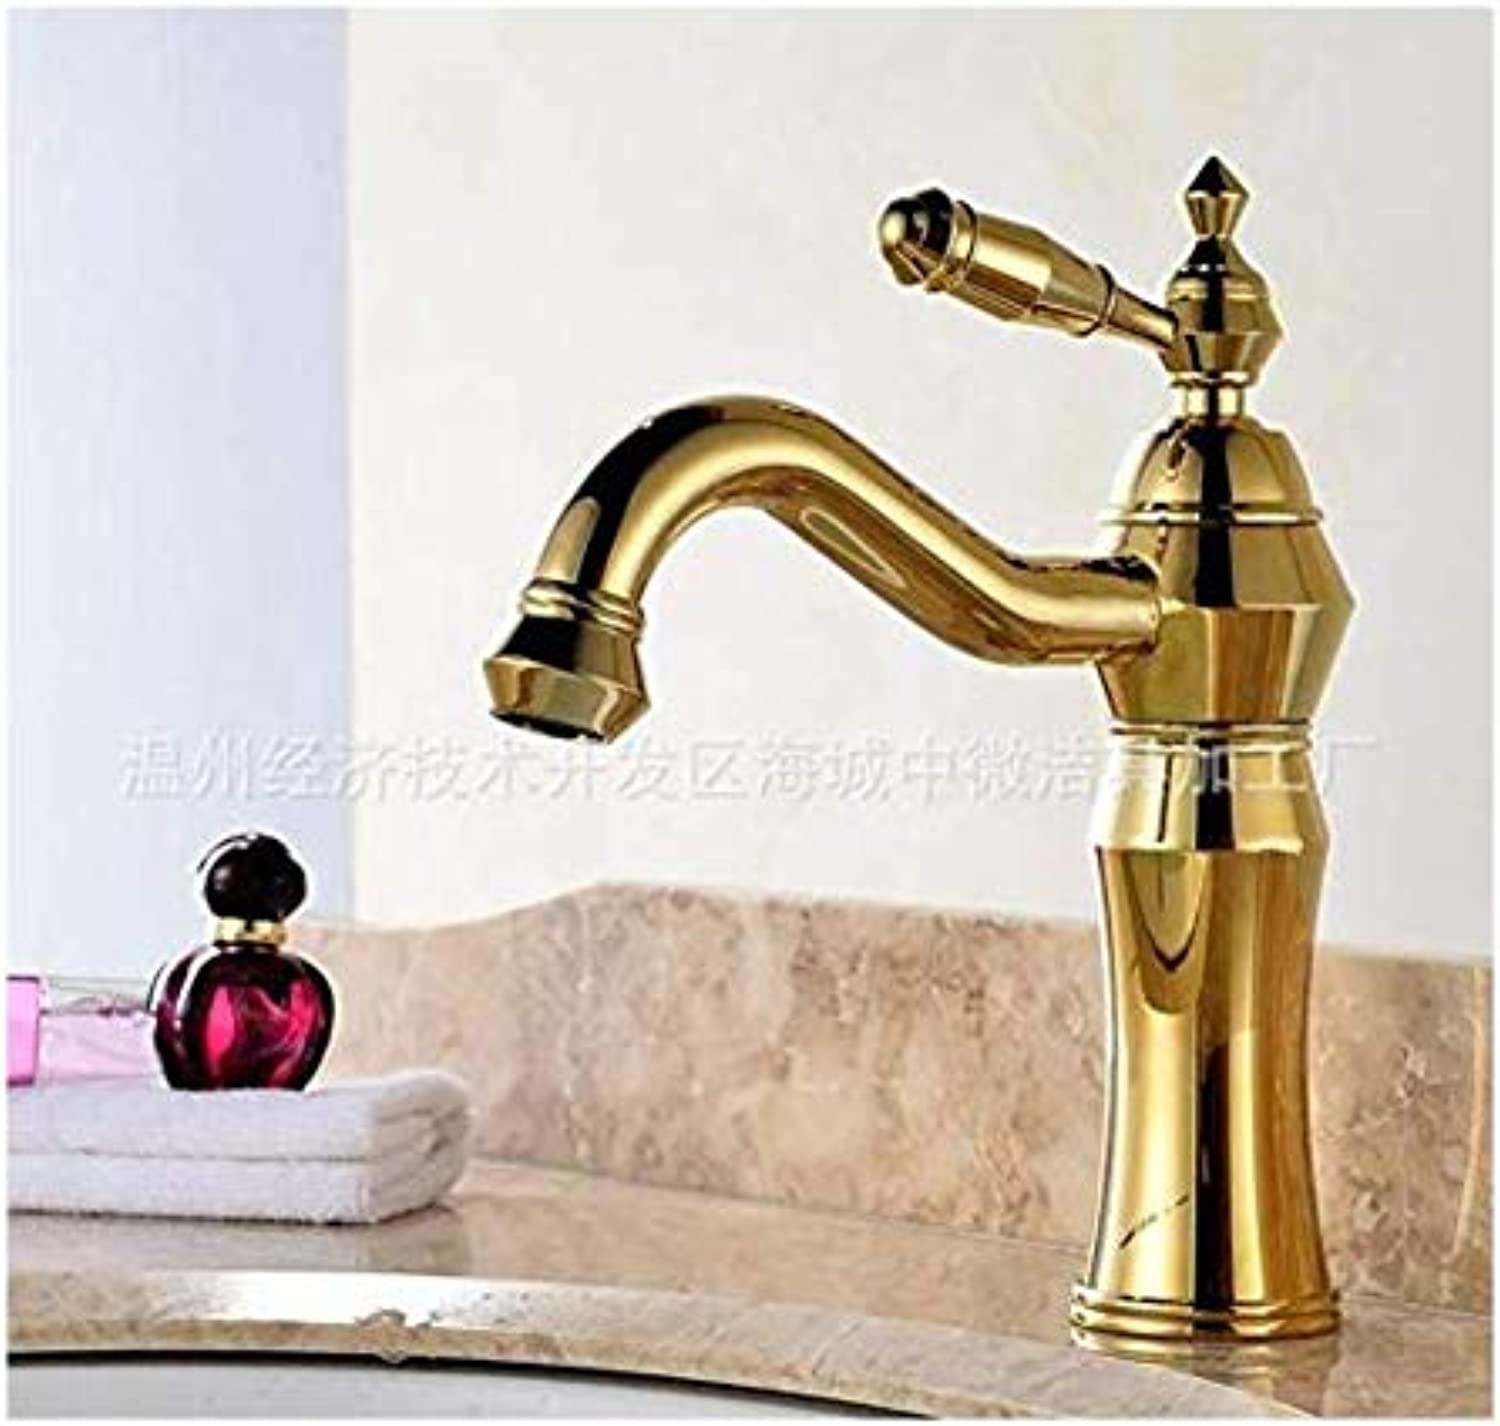 Chrome-Plated Adjustable Temperature-Sensitive Led Faucetfaucet Full Copper Basin Hot and Cold Faucet Can Be redated 360 Degrees Wash Basin Basin Faucet Above Counter Basin Faucet